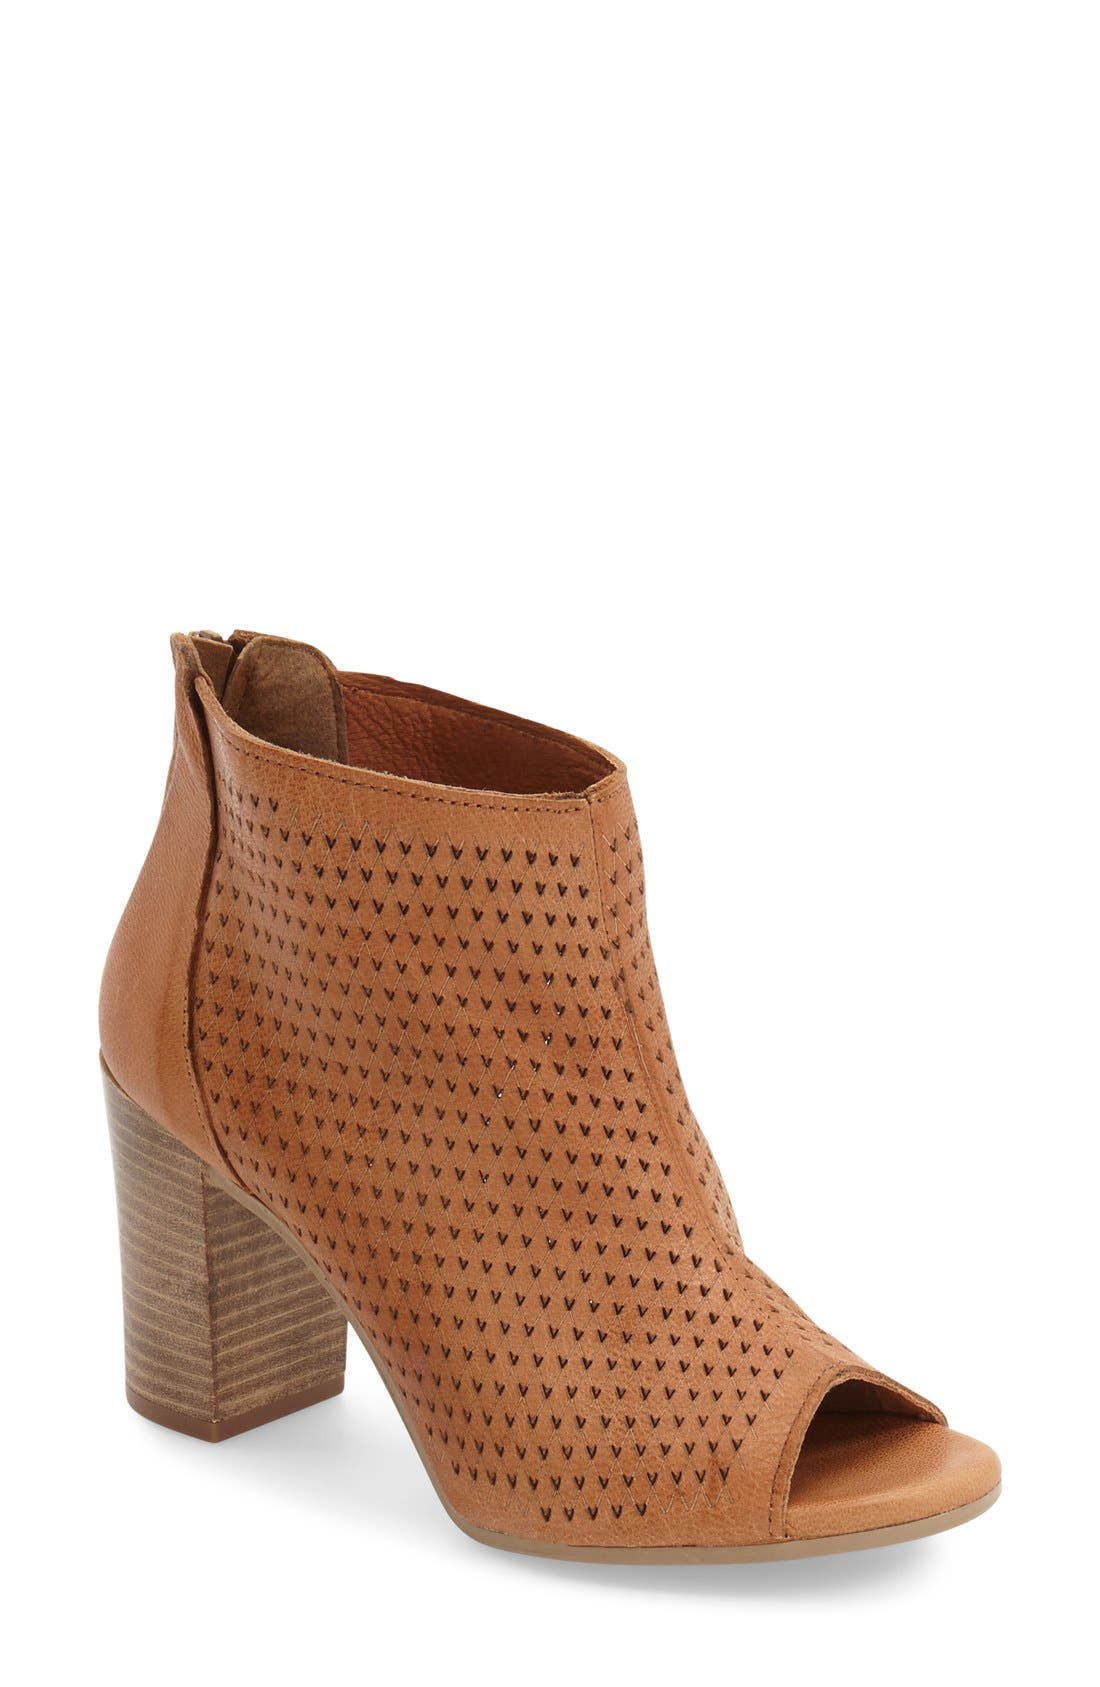 'Nina' Open Toe Bootie,                         Main,                         color, Luggage Leather